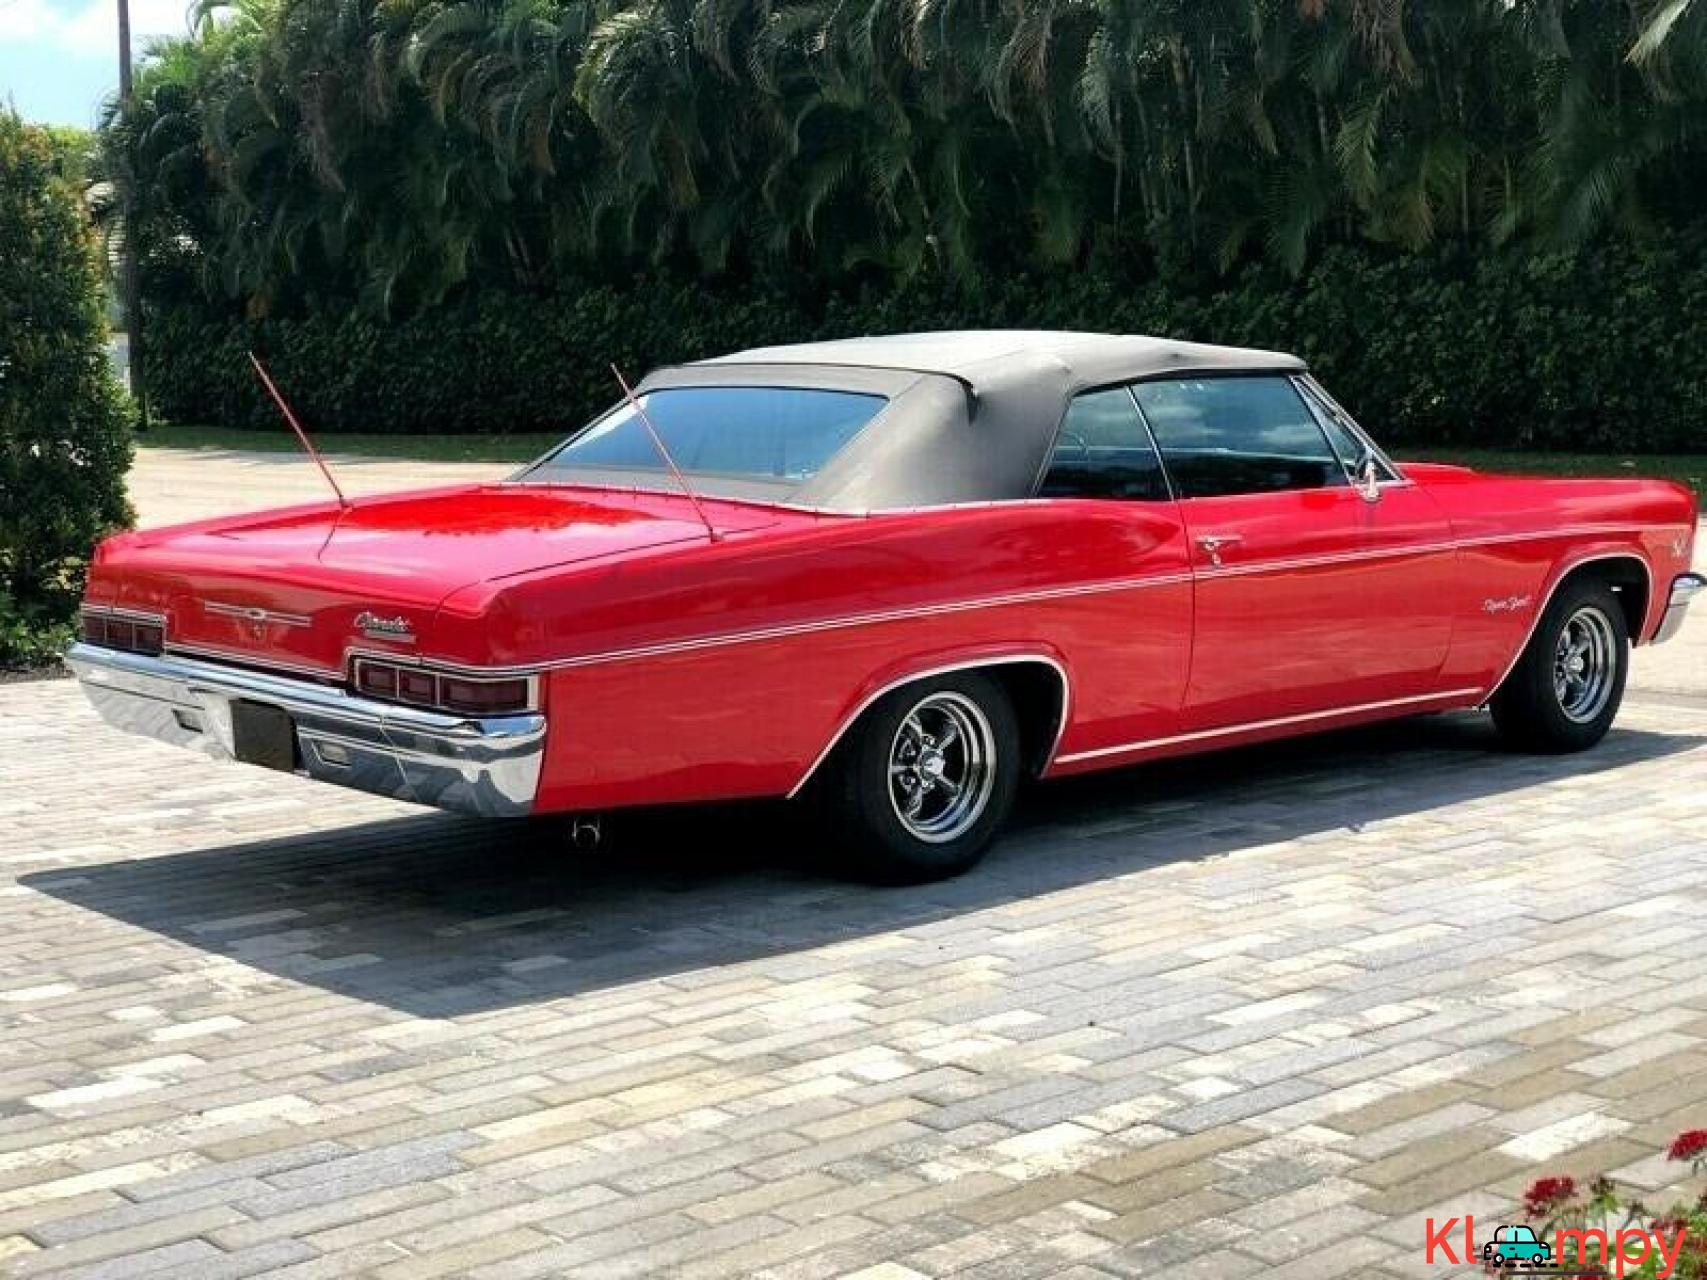 1966 Chevrolet Impala MATCHING NUMBERS PWR - 6/20